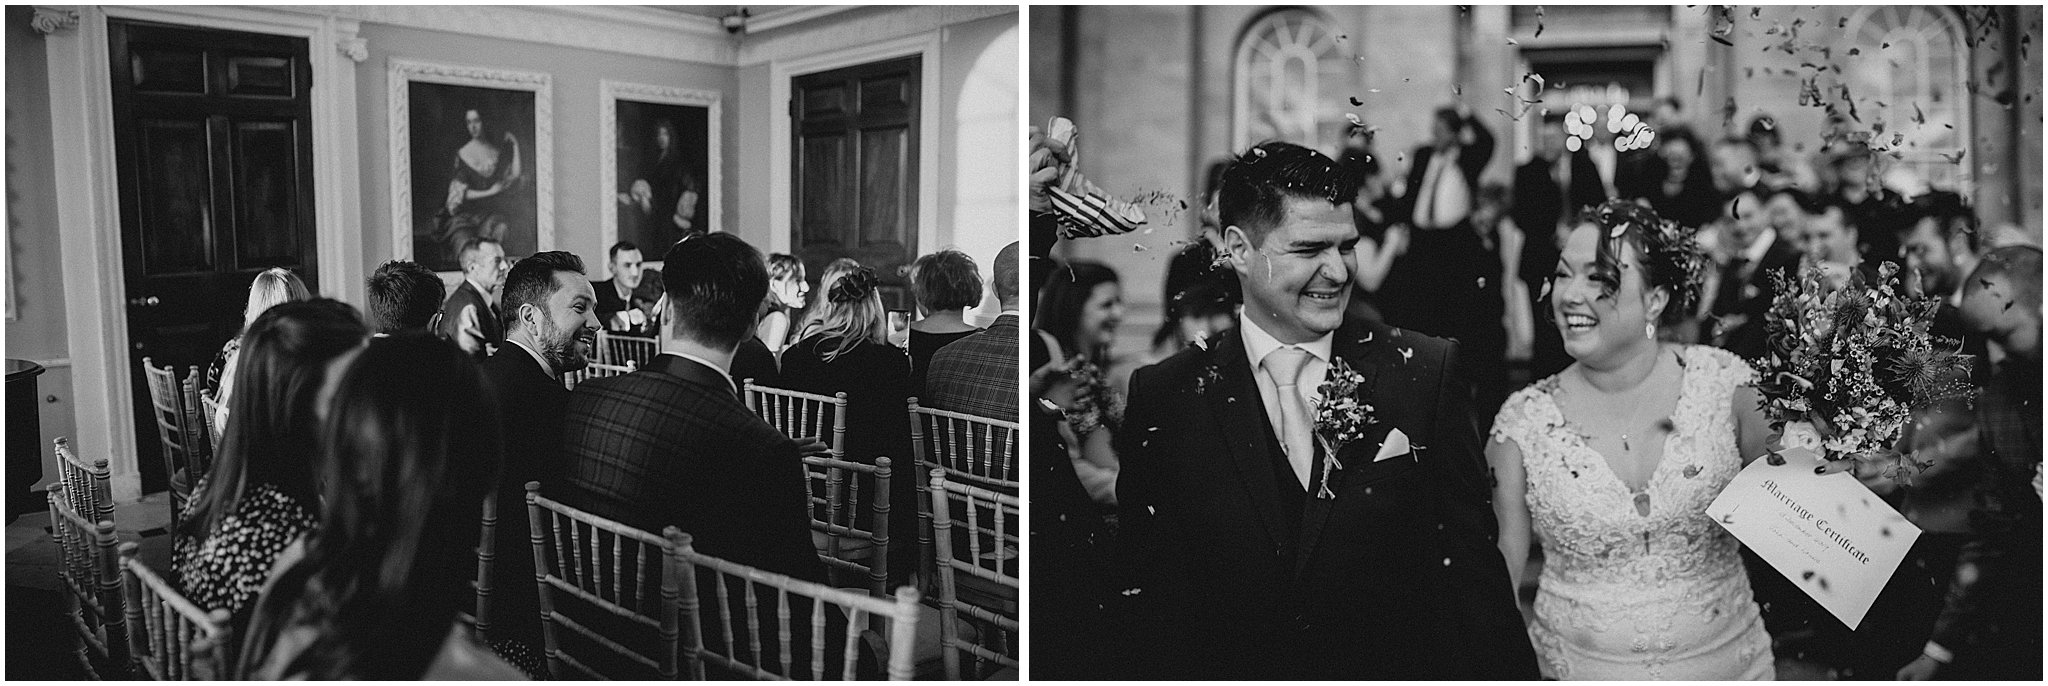 Louise & John_s Kings Weston House Bristol Wedding-413.jpg